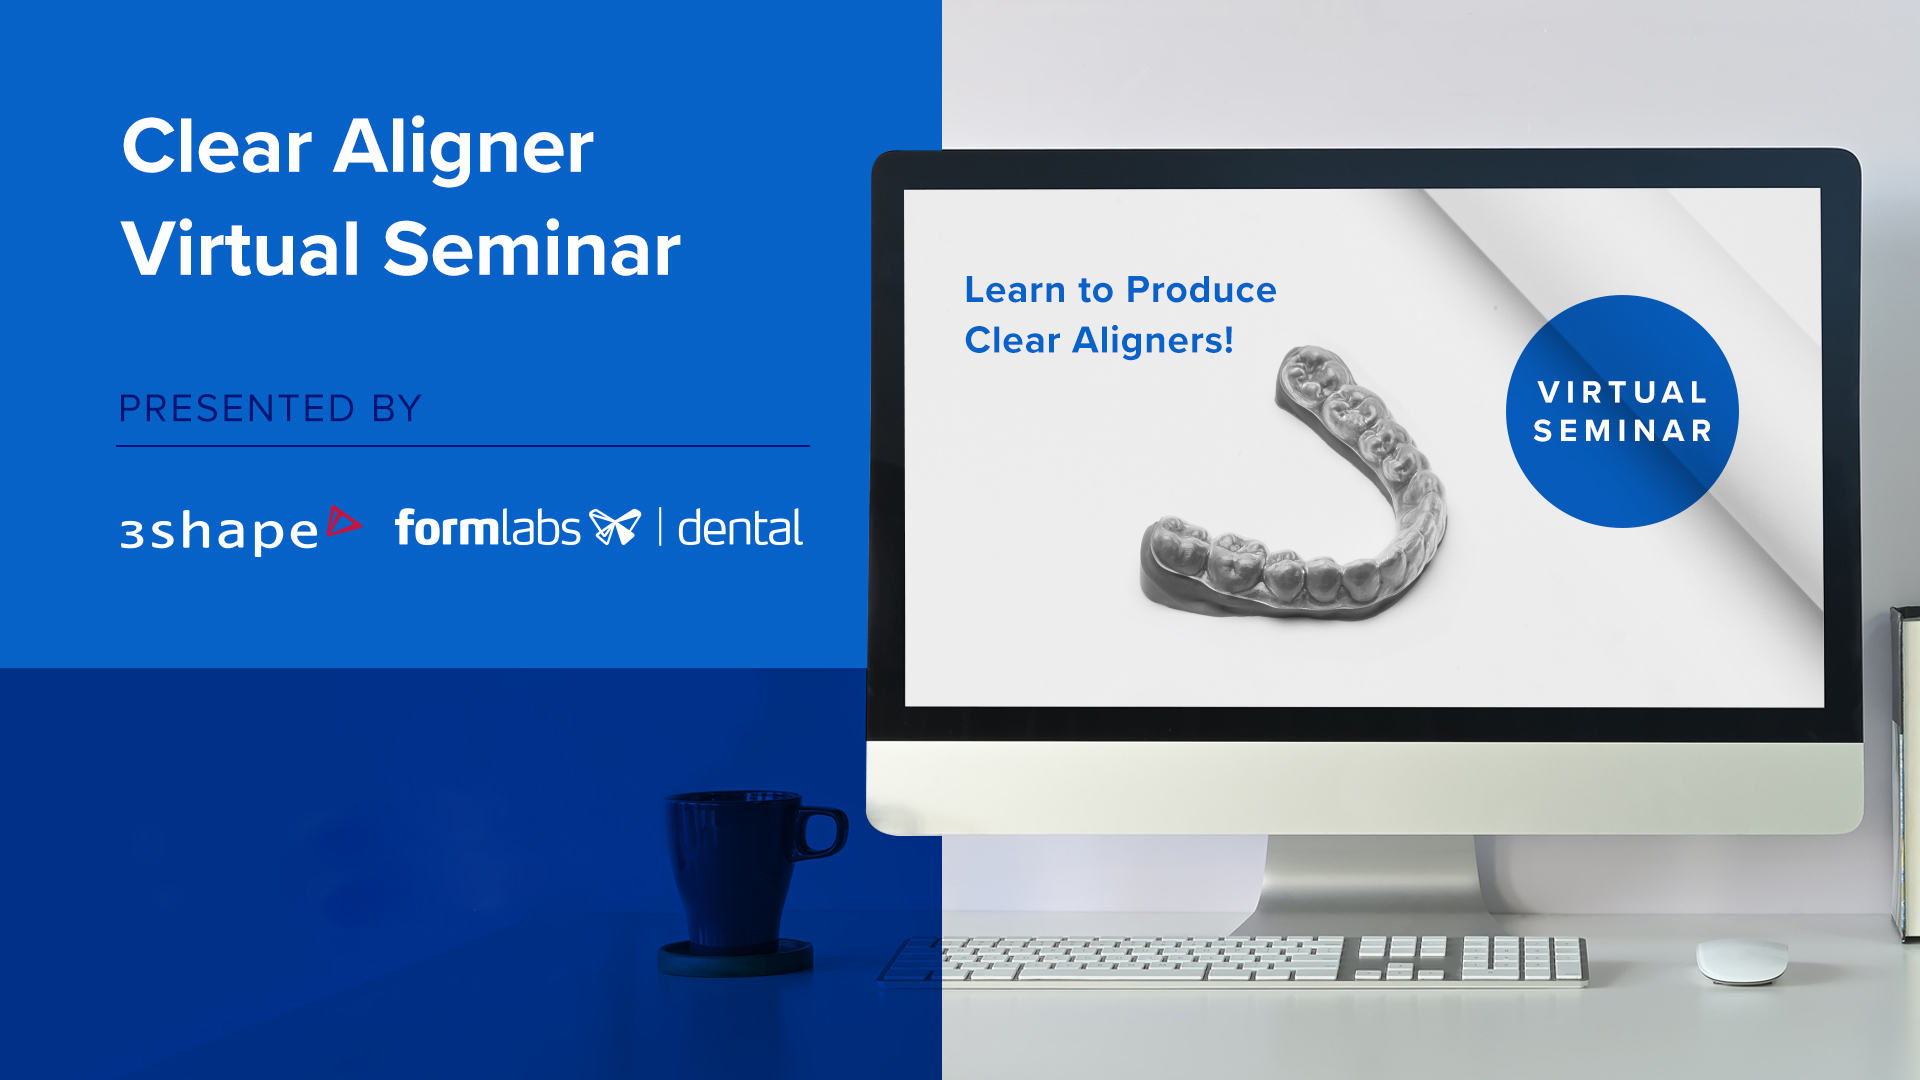 Clear Aligner Virtual Seminar with 3Shape and Formlabs